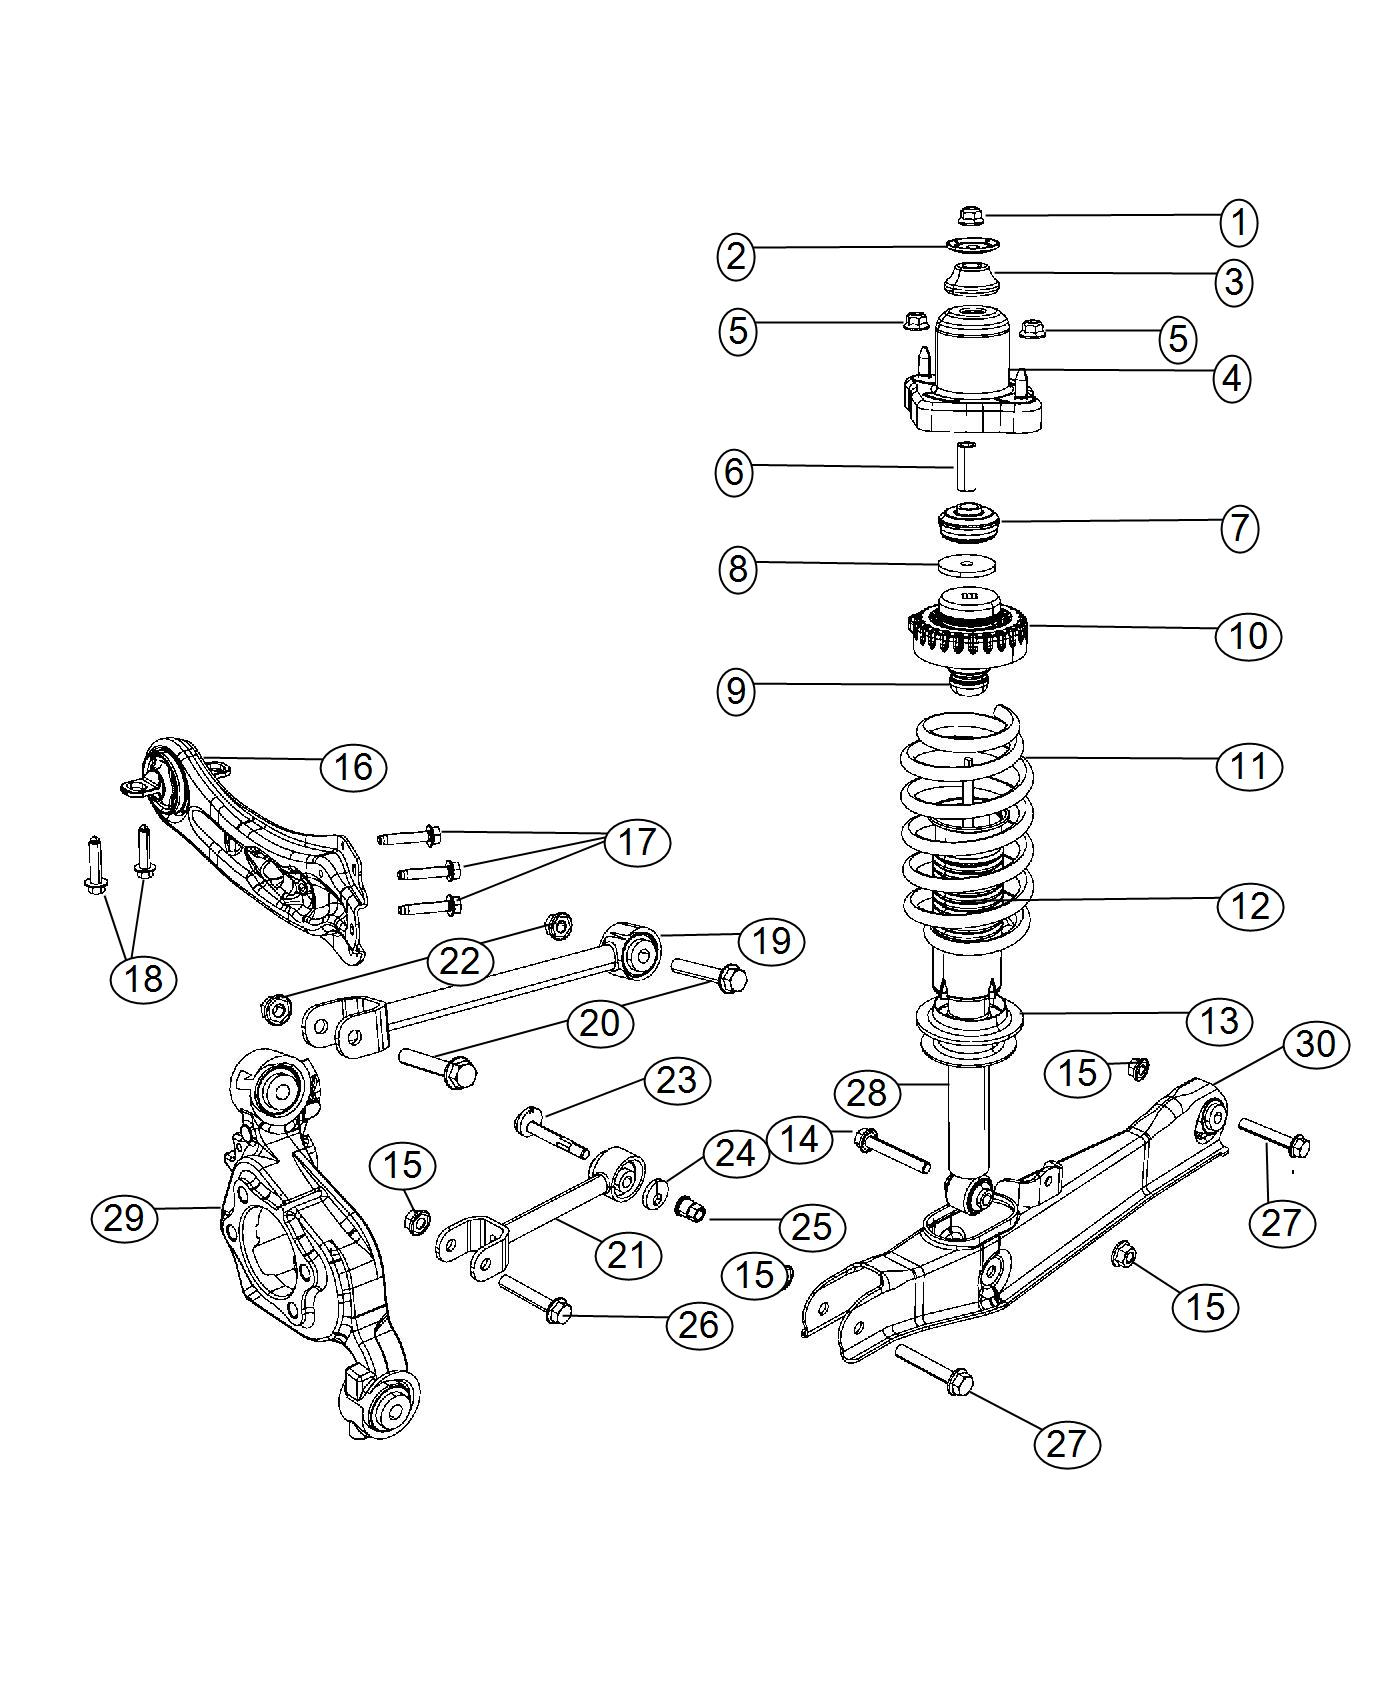 T11028786 Find vacuum hose diagram 1996 toyota together with 350882 My 5 4 Swap additionally Ford F150 F250 How To Fix Radiator Leak 360077 likewise 1105125 Icp And Uvhc besides Dodge Wiper Linkage Diagram. on ford f 250 transmission cooler lines